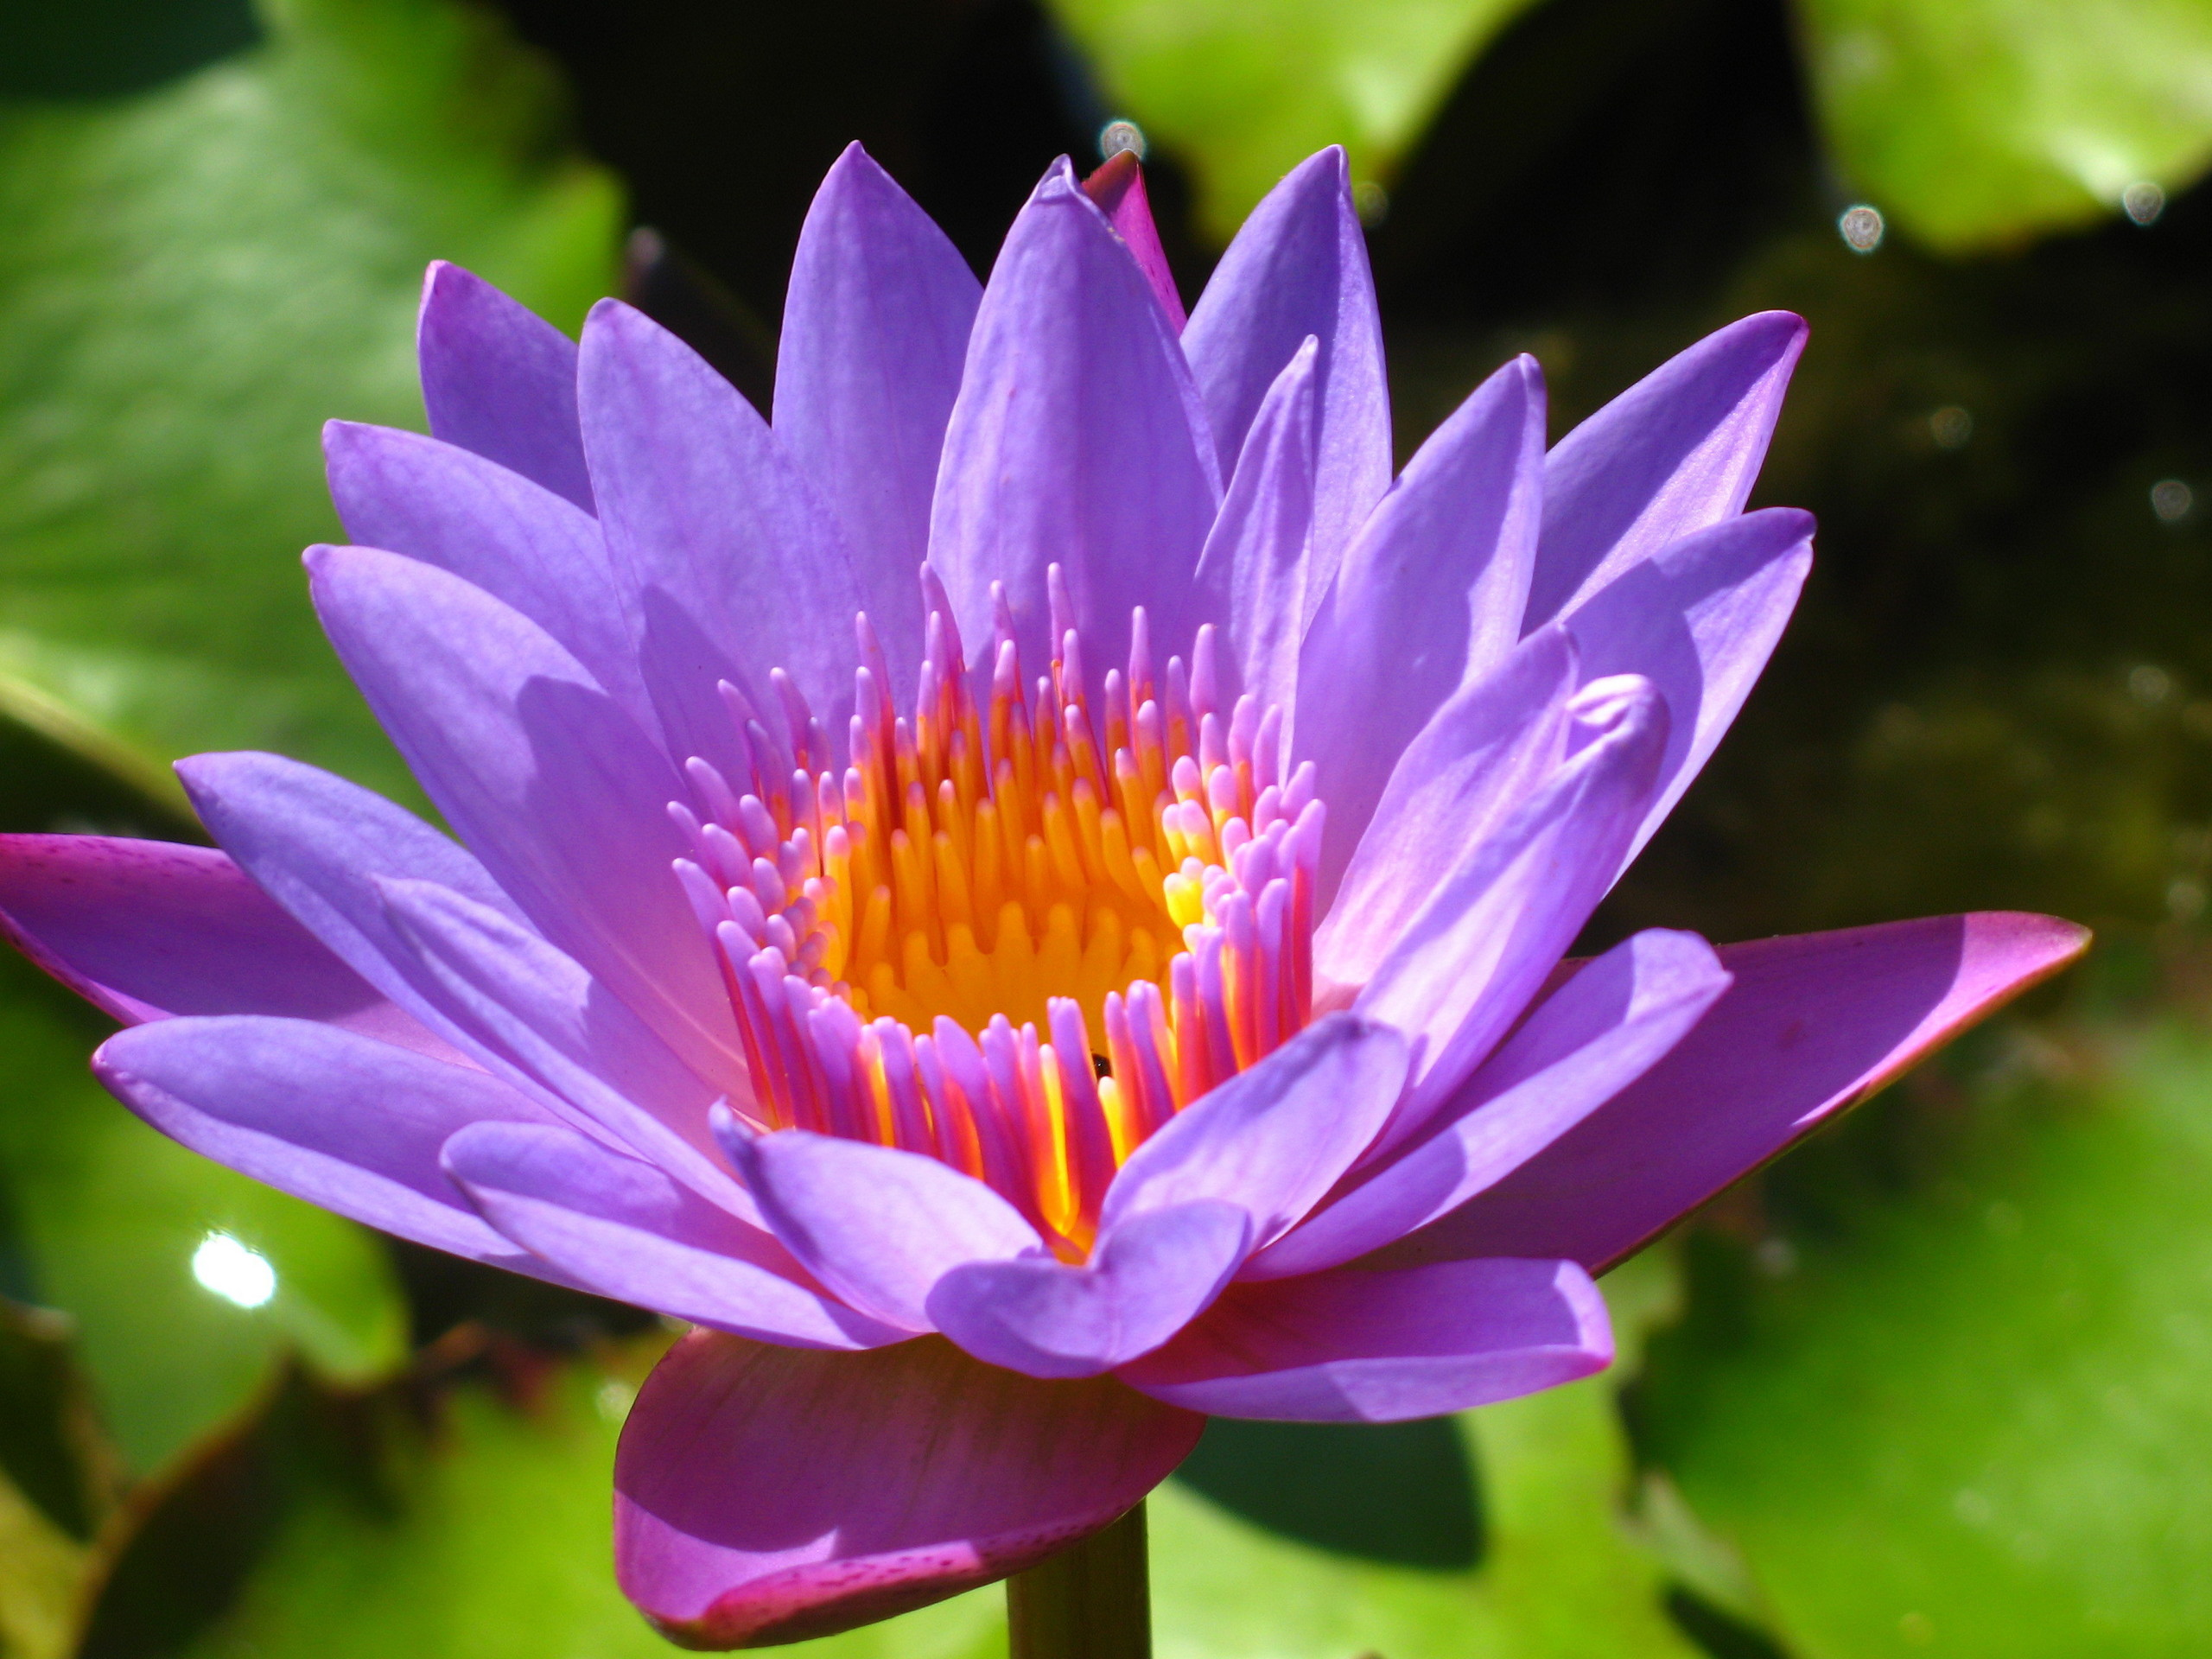 Flowers Images Water Lily Or Lotus Hd Wallpaper And Background